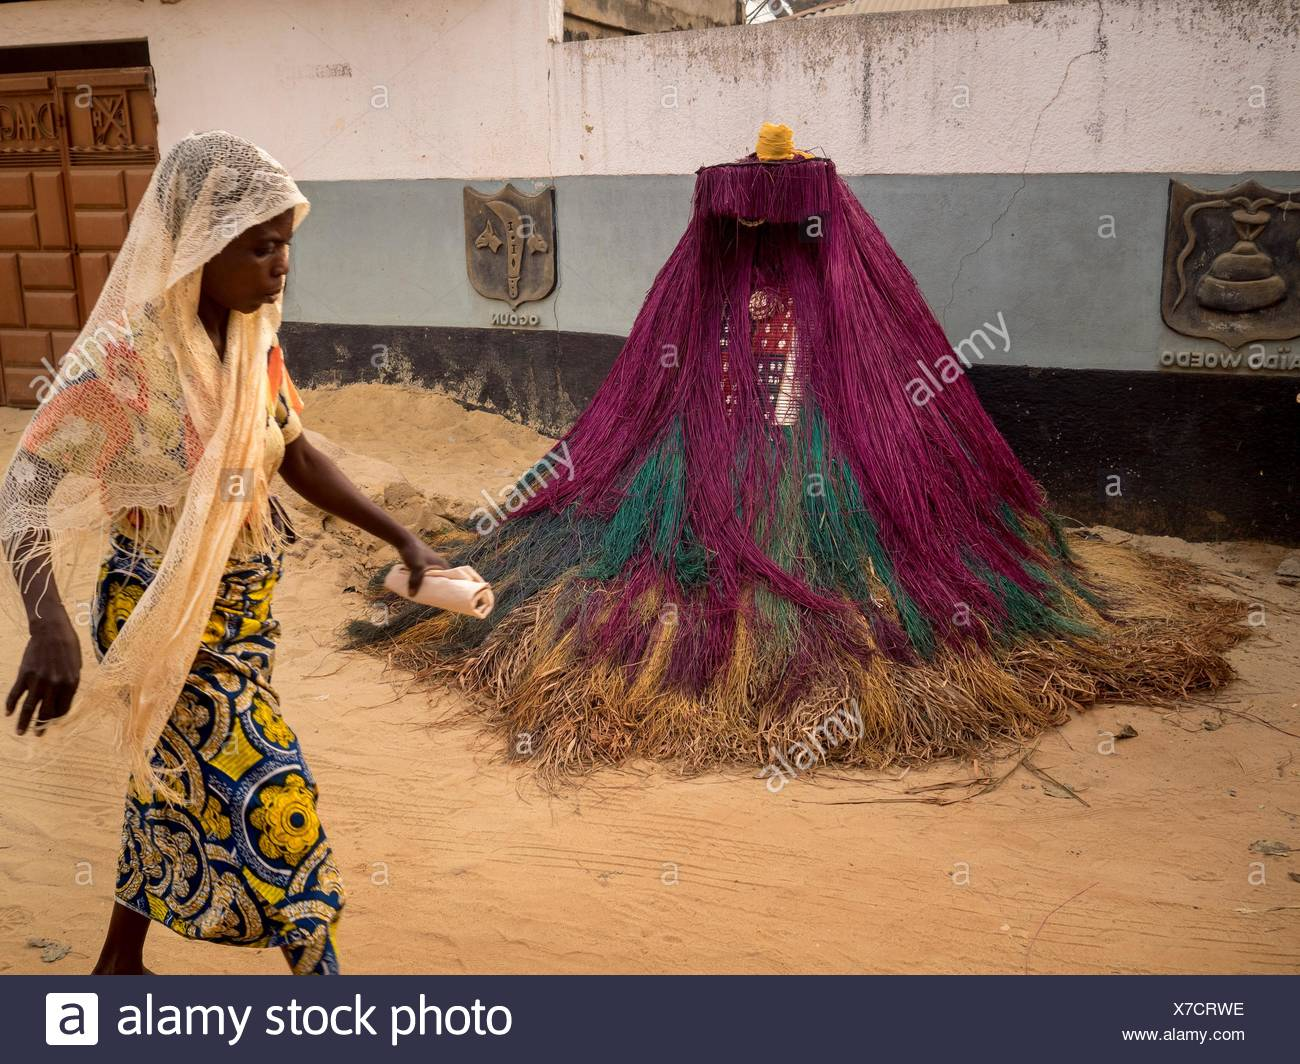 A woman walking in front of a Zangbeto mask, known as a 'Nightwatchman,' the traditional voodoo guardian of the night in the Yoruba religion of Benin and Togo. - Stock Image